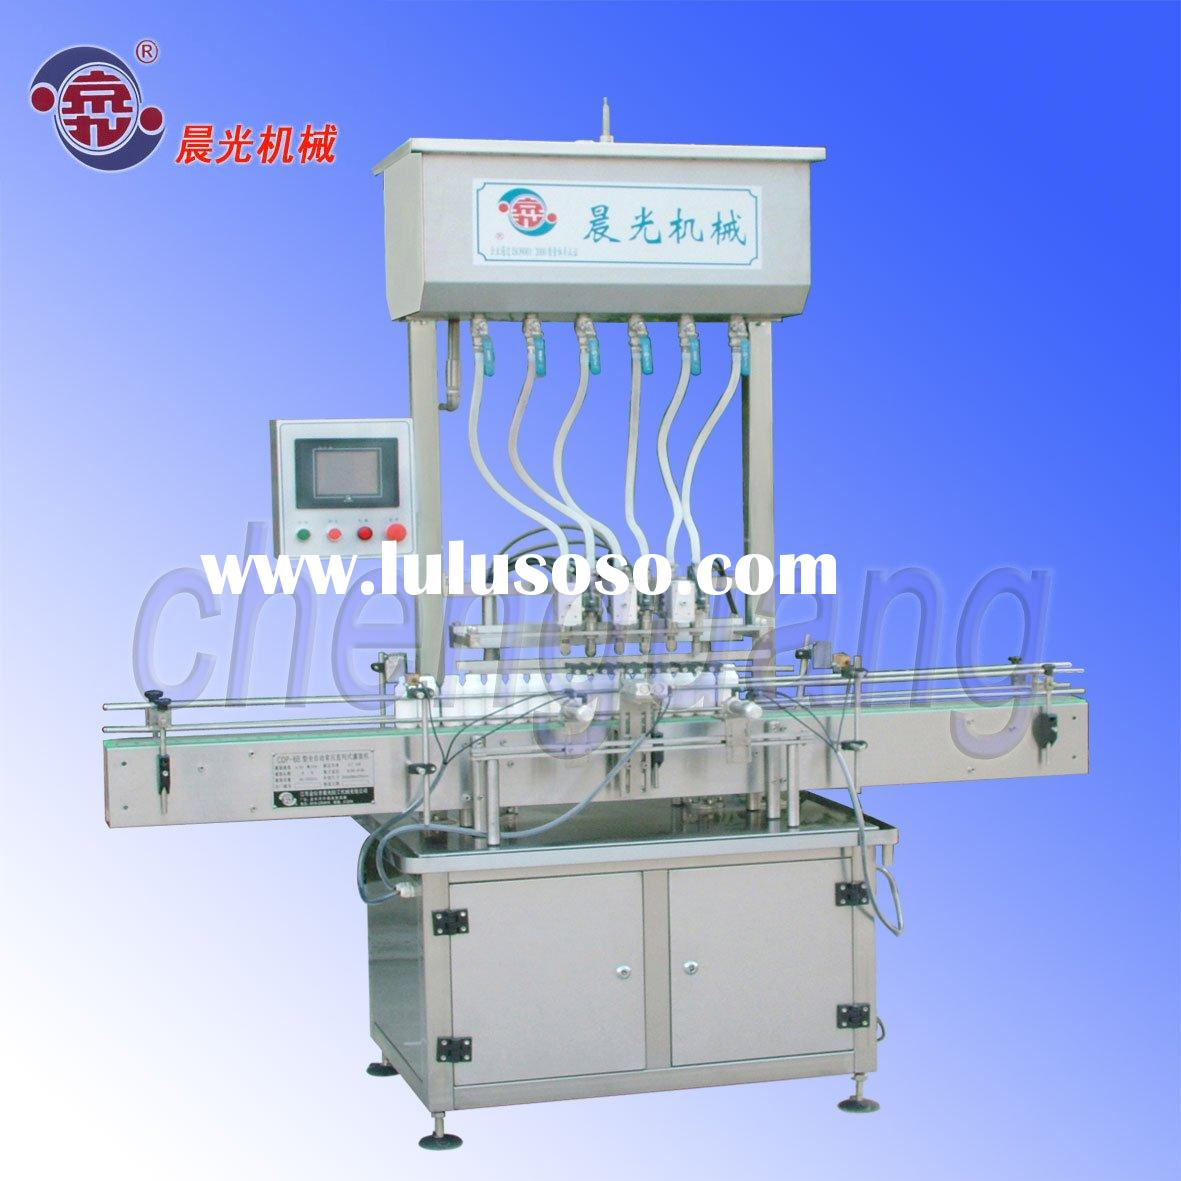 Full-automatic In-line Bottle Mineral Water Beverage Filling Machine